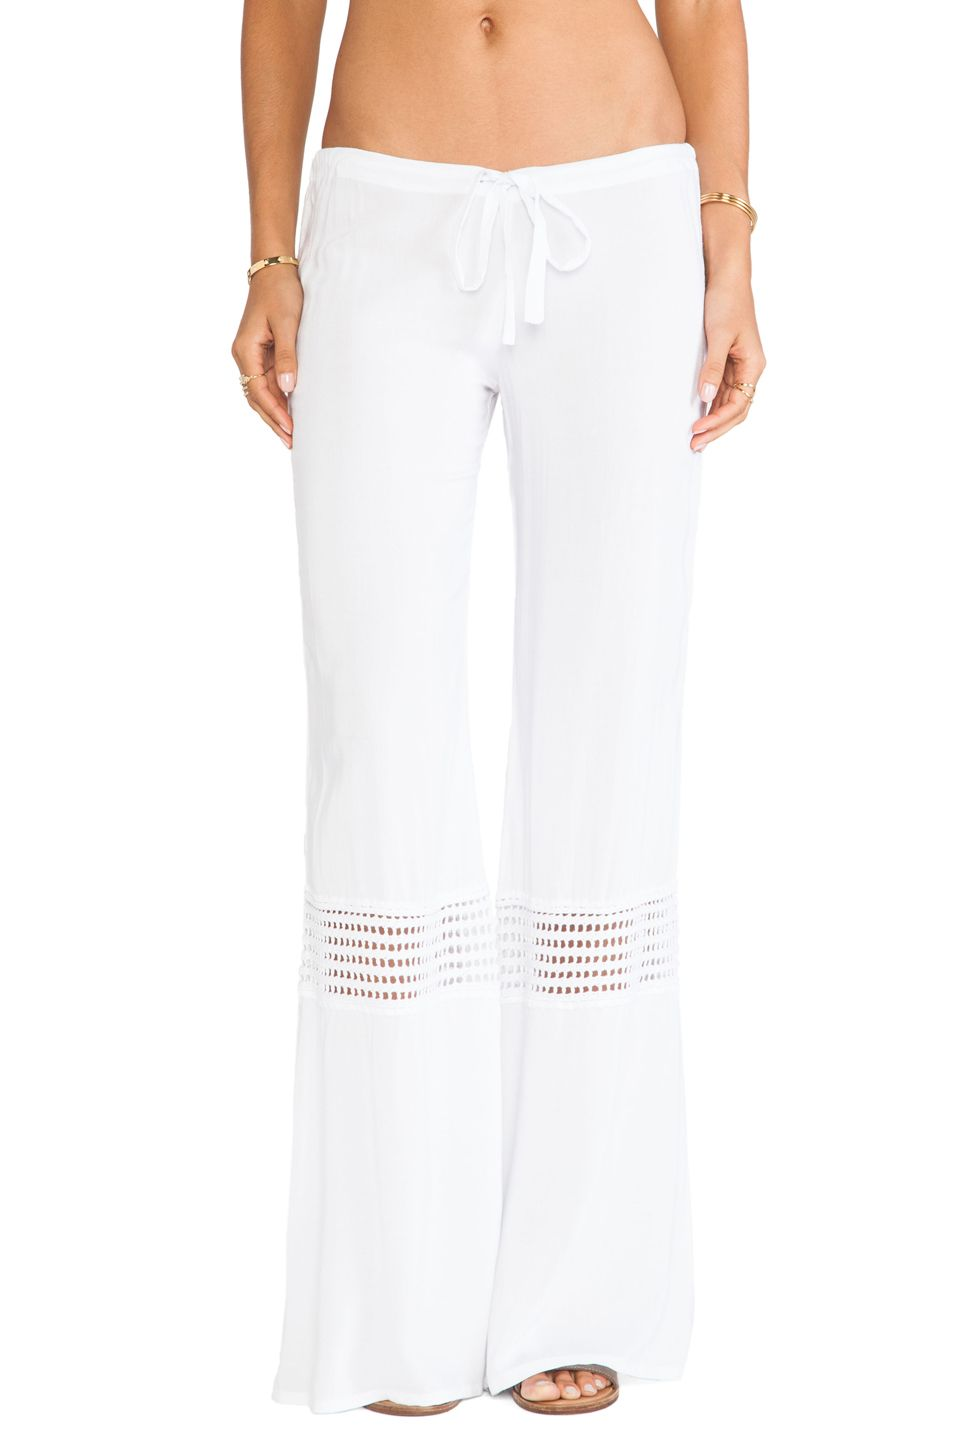 Indah Flores Pant in White | REVOLVE